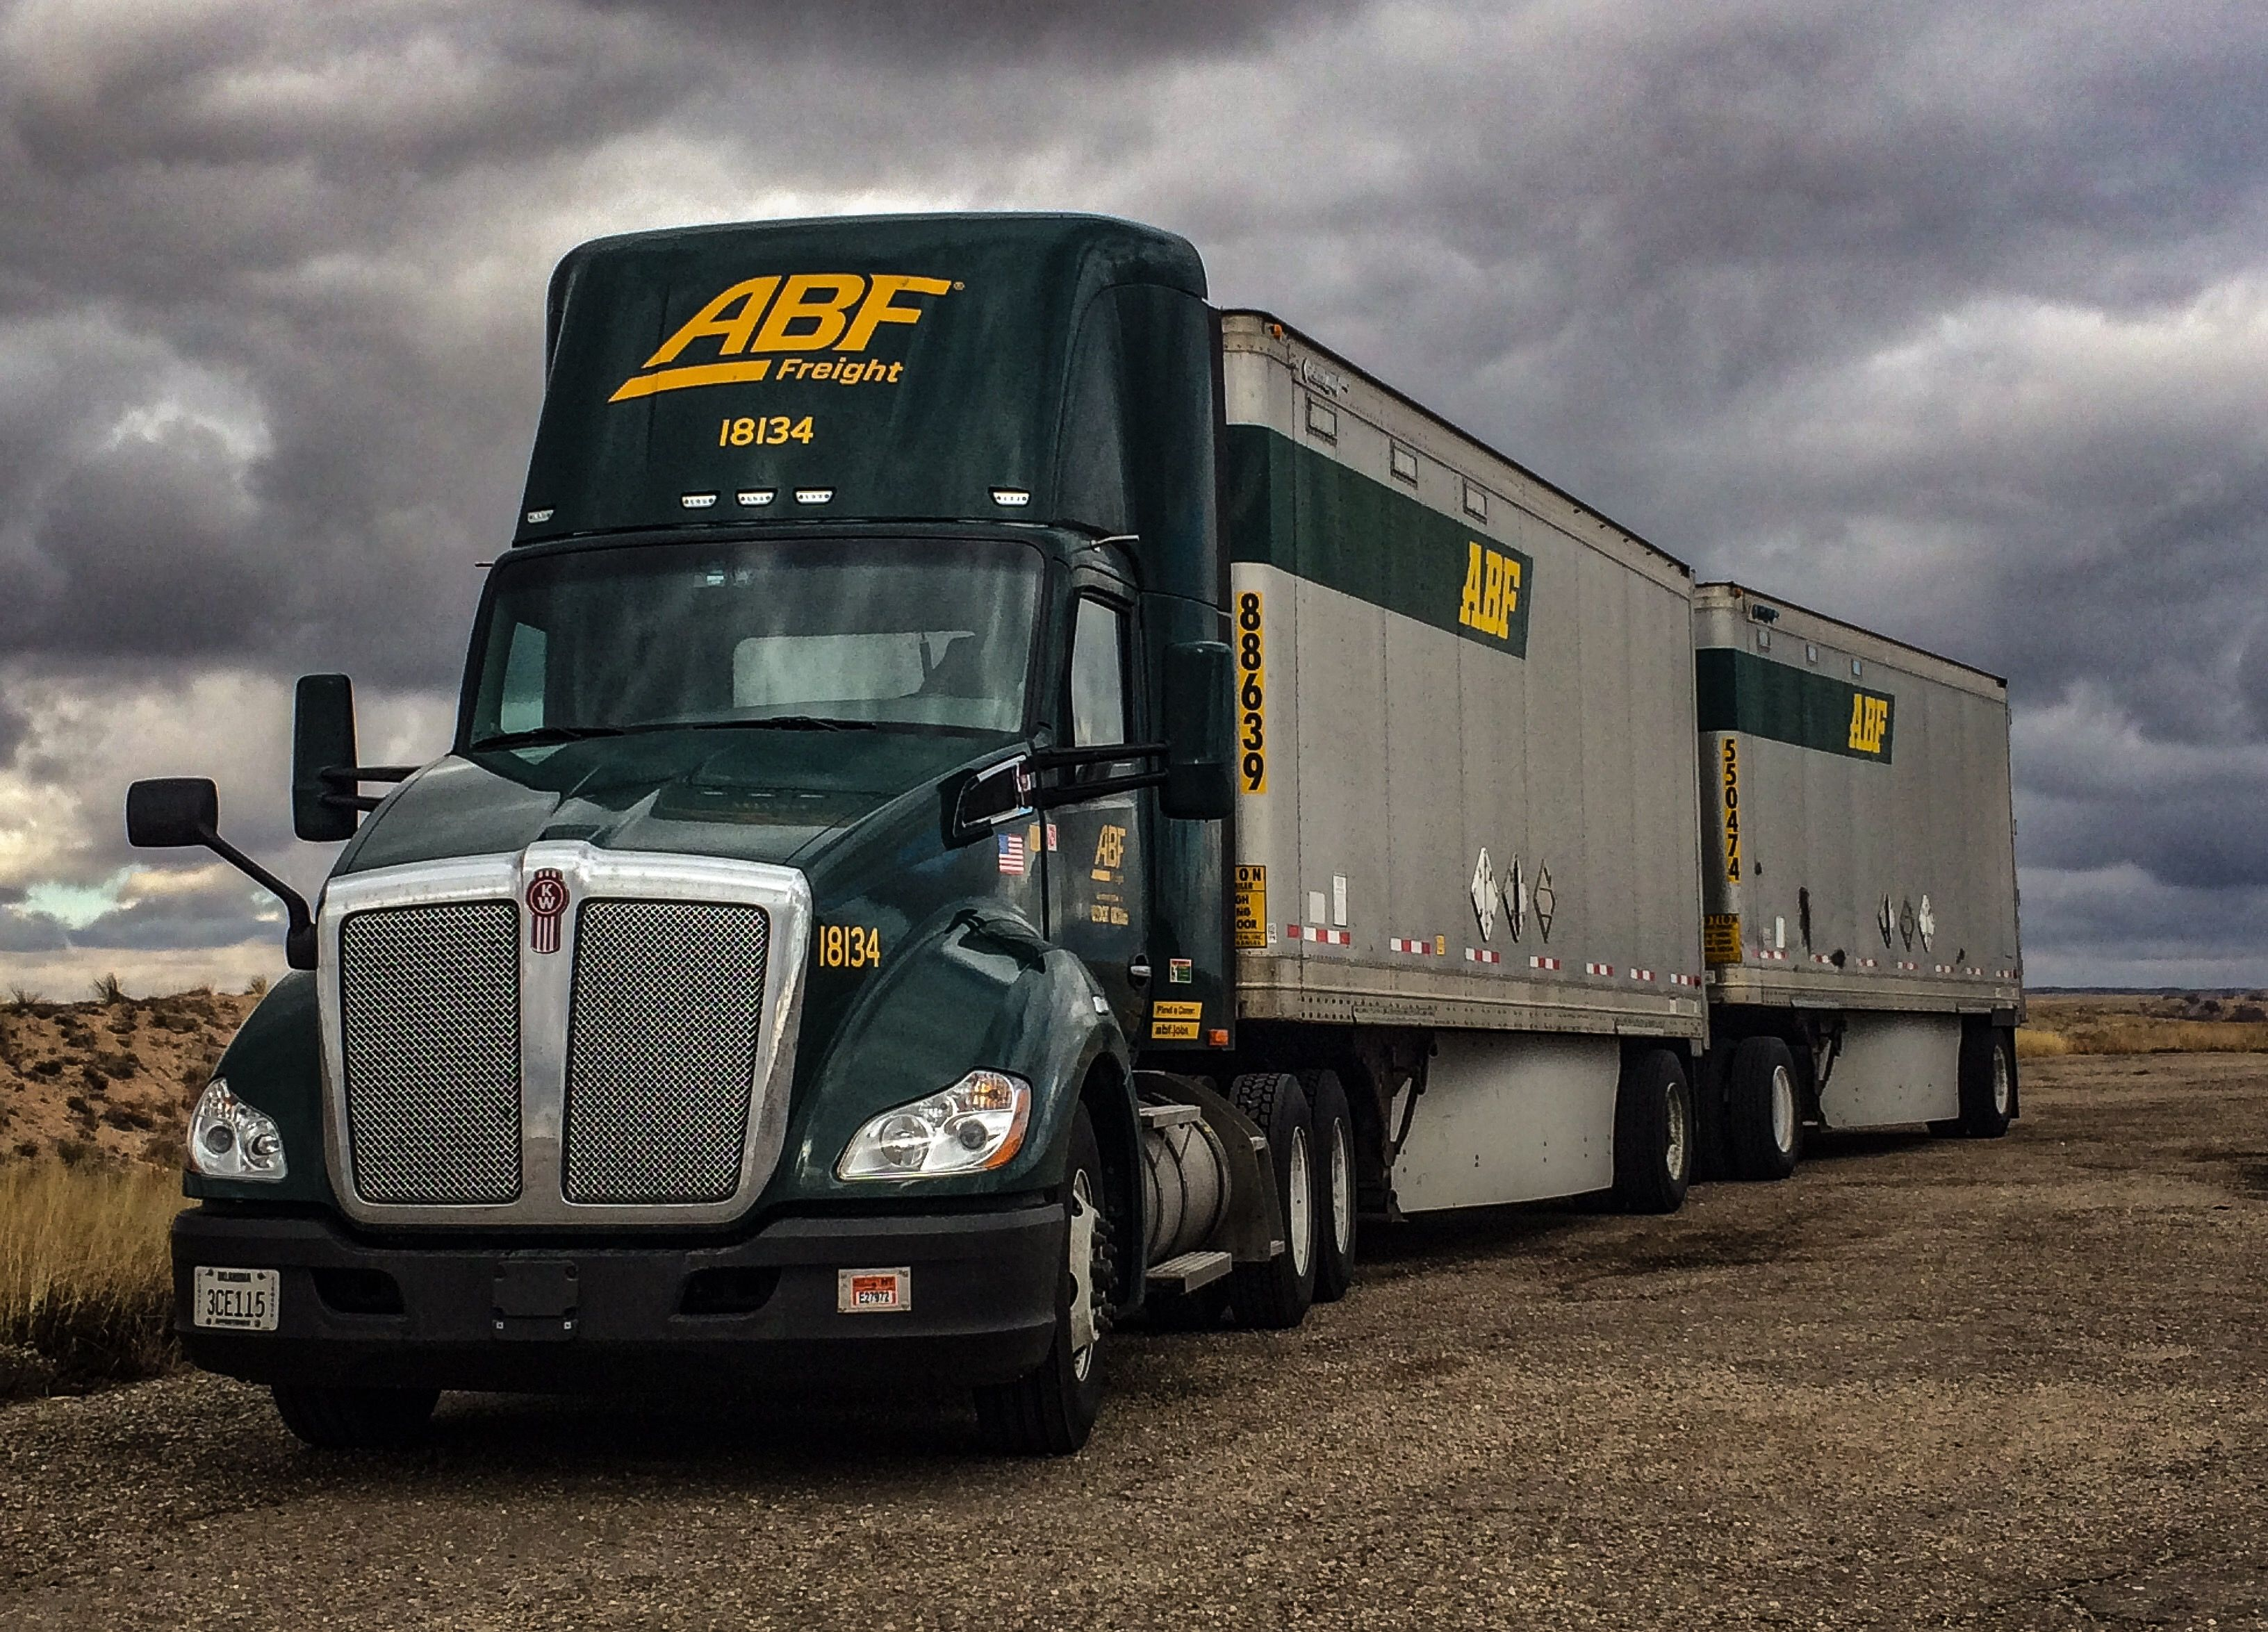 ABF Freight 2018 Kenworth tandem... Photo by George Stokes